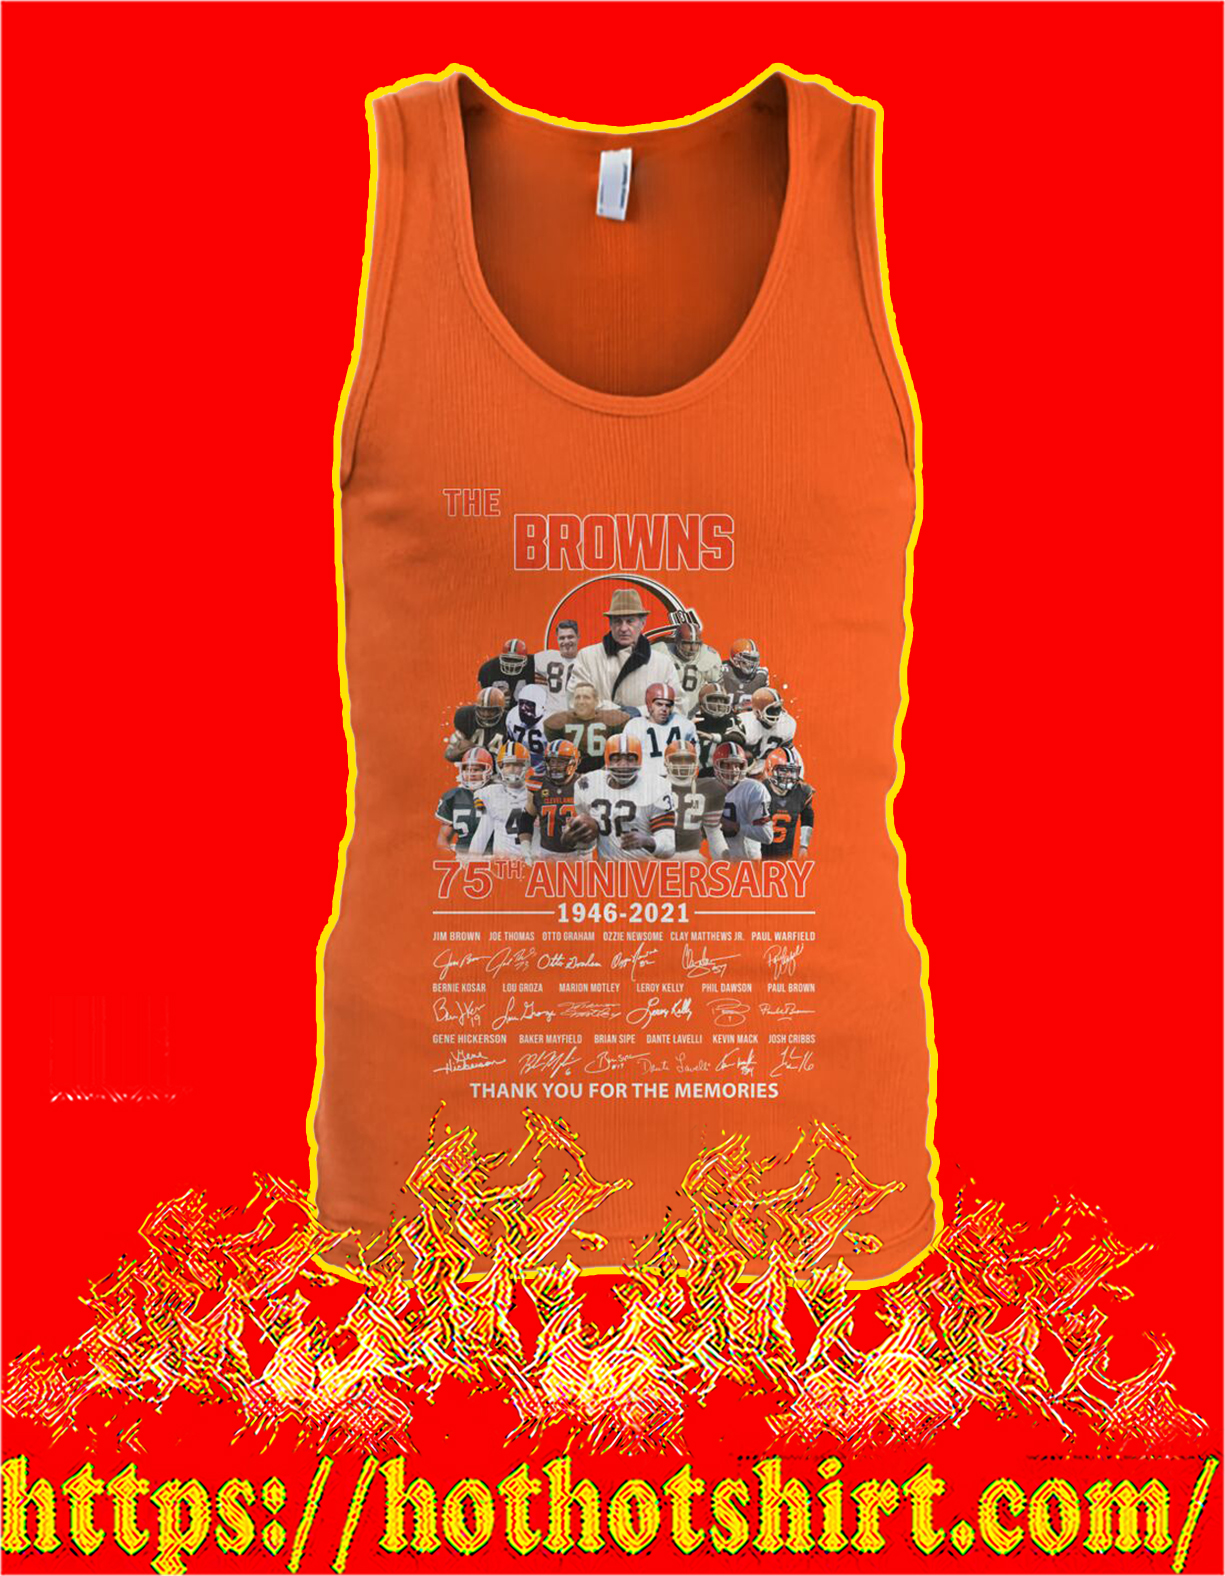 The browns 75th anniversary thank you for the memories tank top